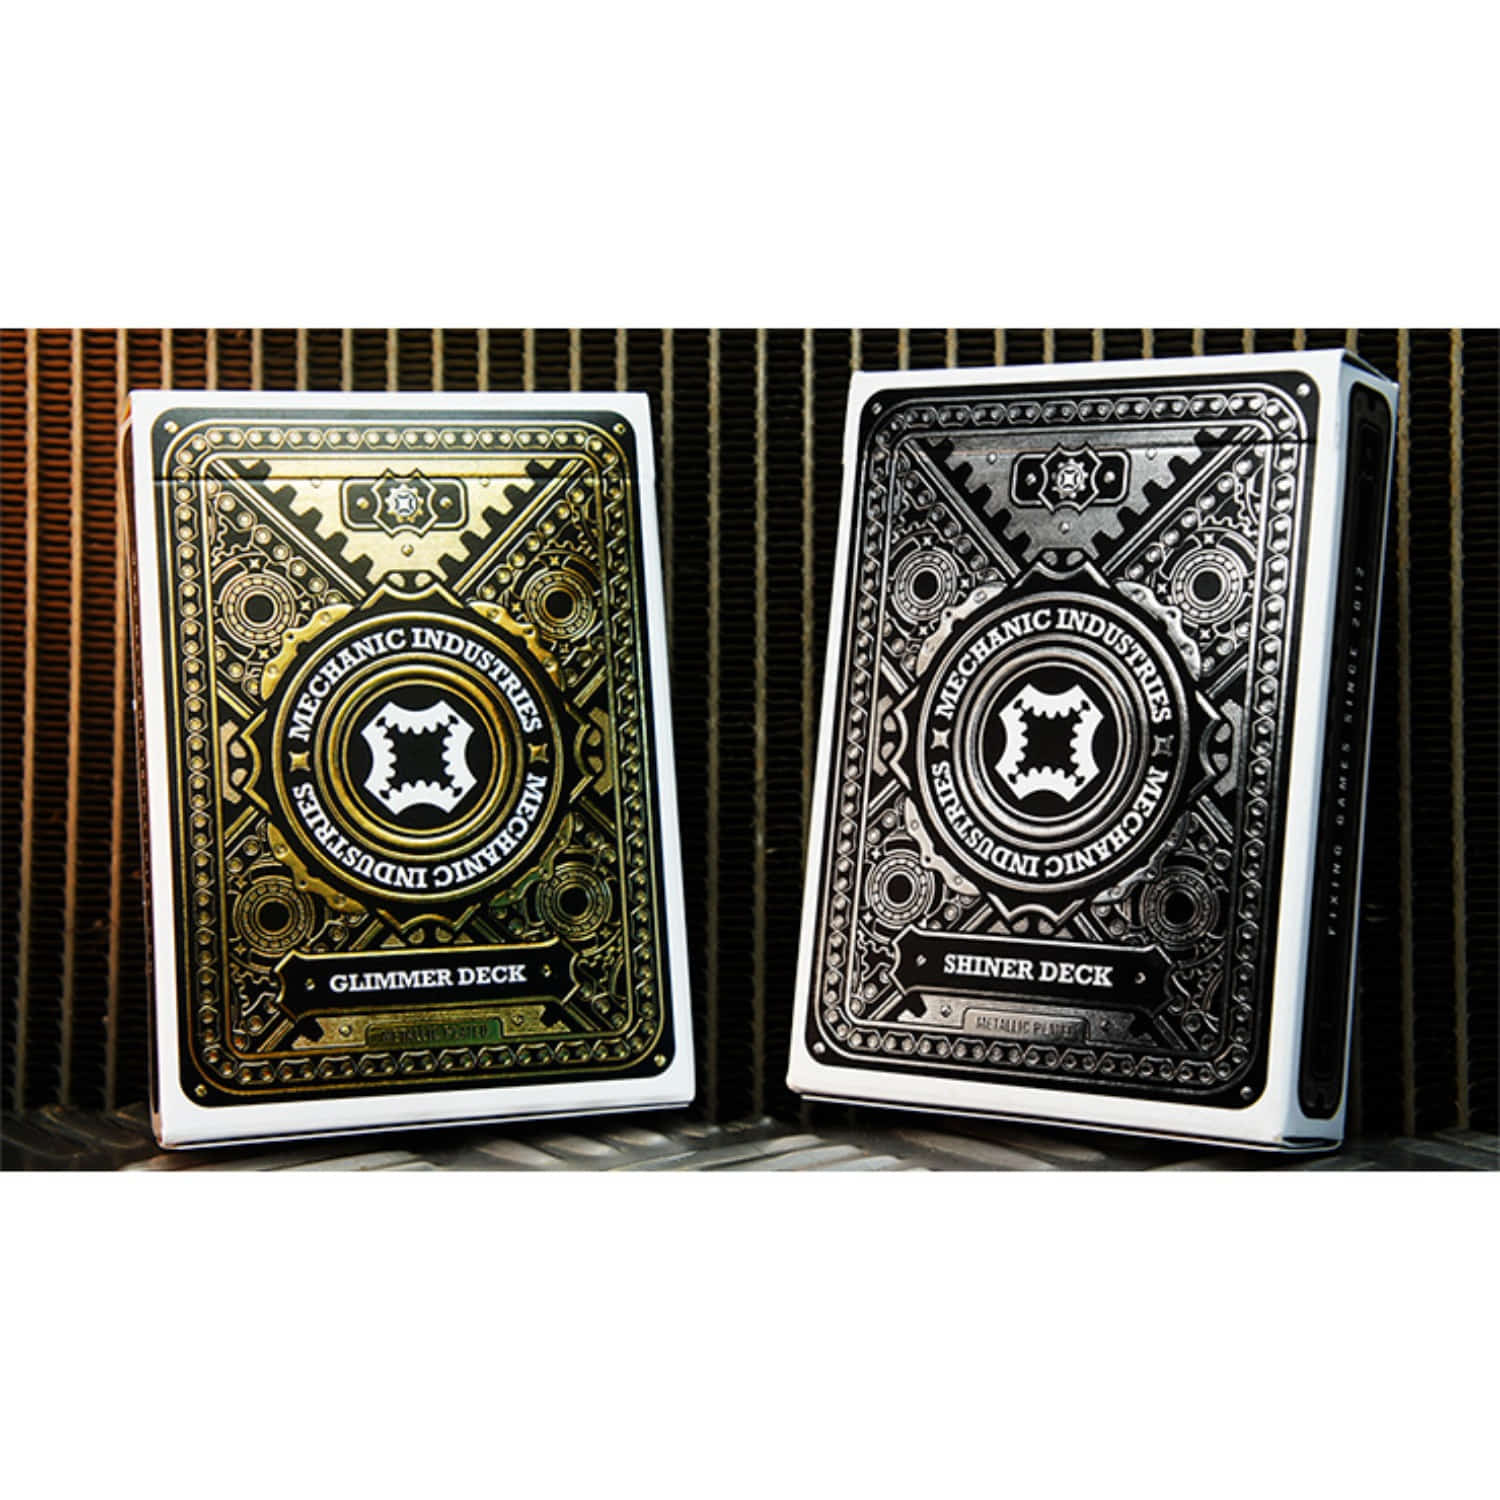 블랙프라이데이 예약세일!!! [메탈릭덱 셋트]Metallic Deck Set (Limited Edition) by Mechanic Industries